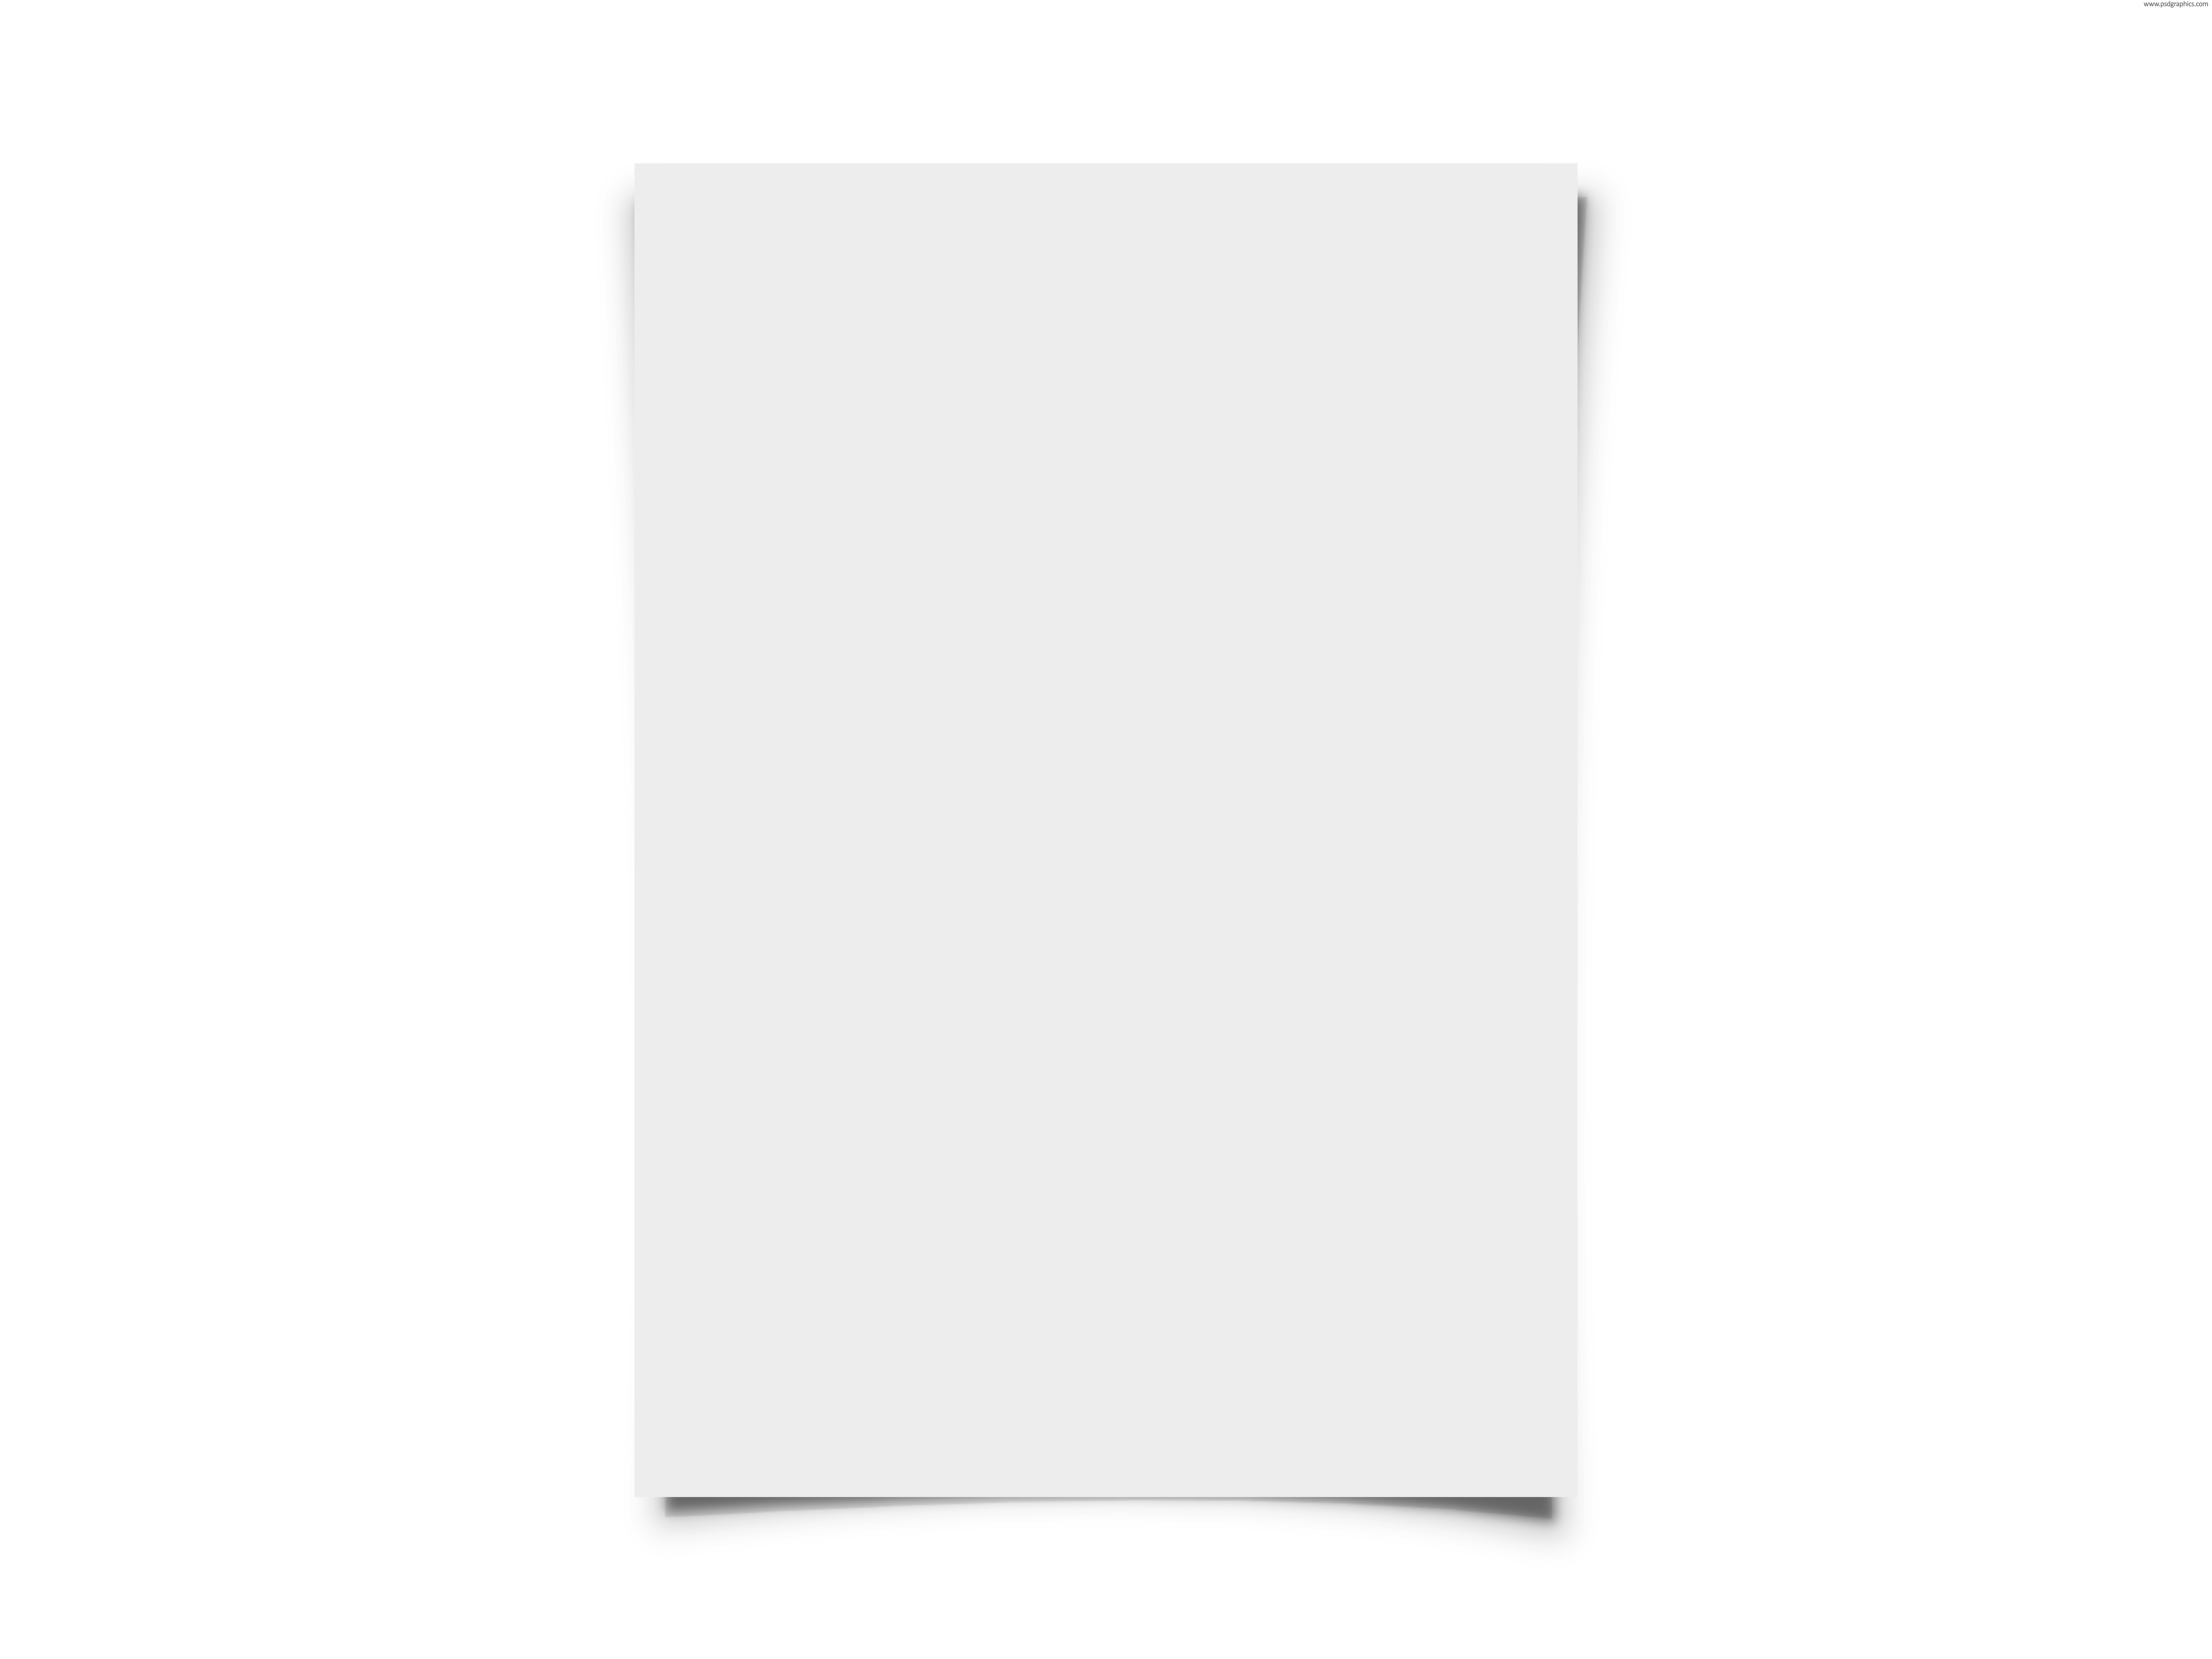 Blank white paper.